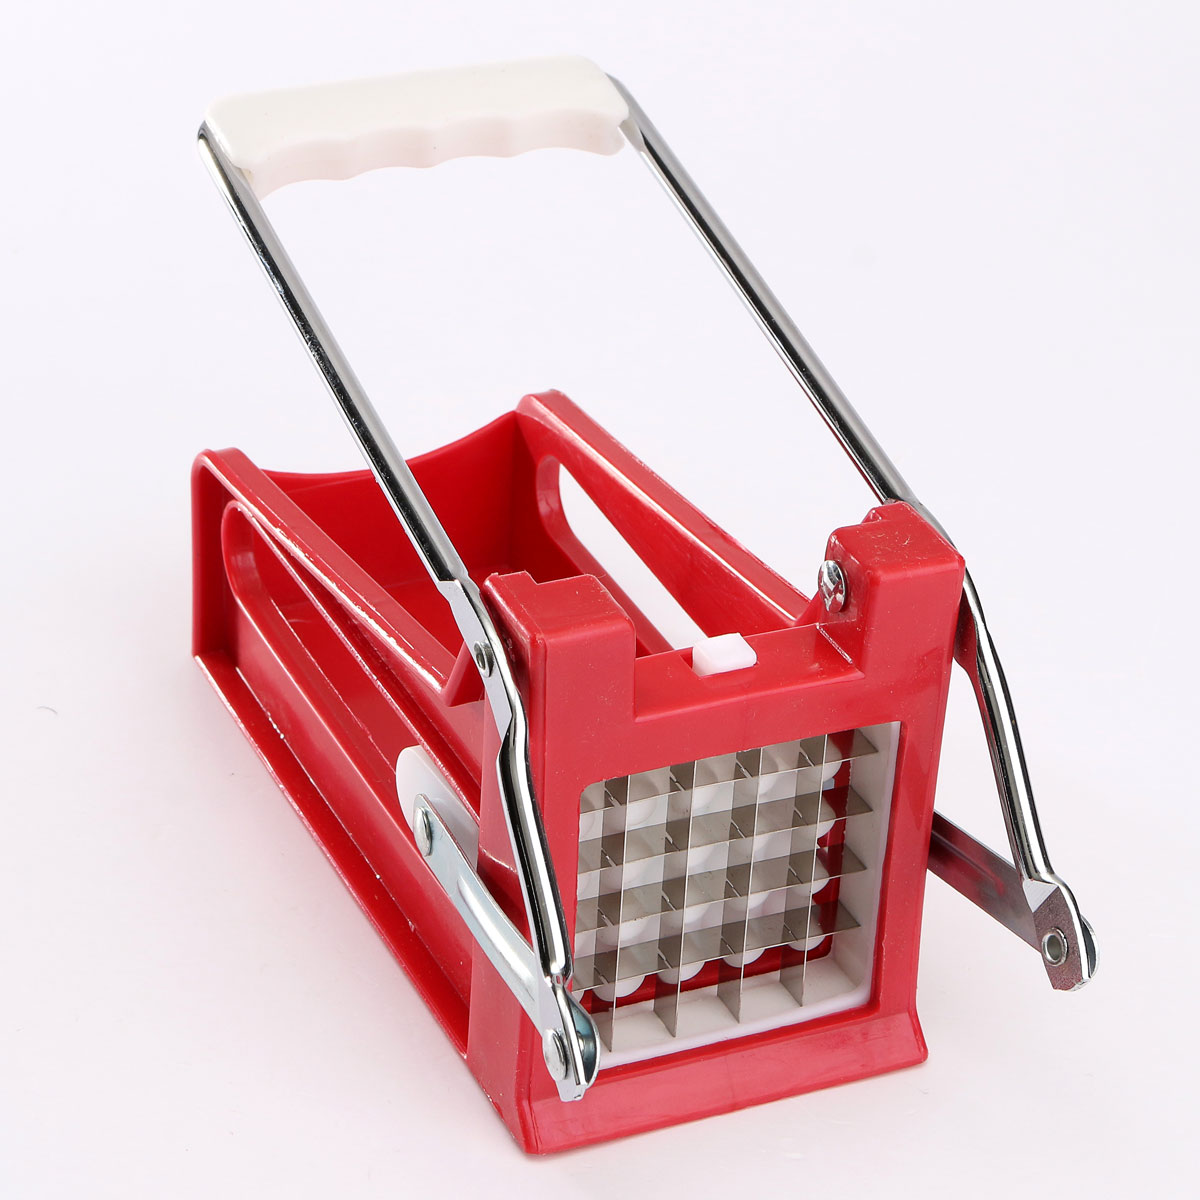 Potato Chips Strip Cutting Machine Maker Slicer Chopper 2 Blades Kitchen Gadgets Stainless Steel French Fries Cutters|Manual French Fry Cutters| |  - title=